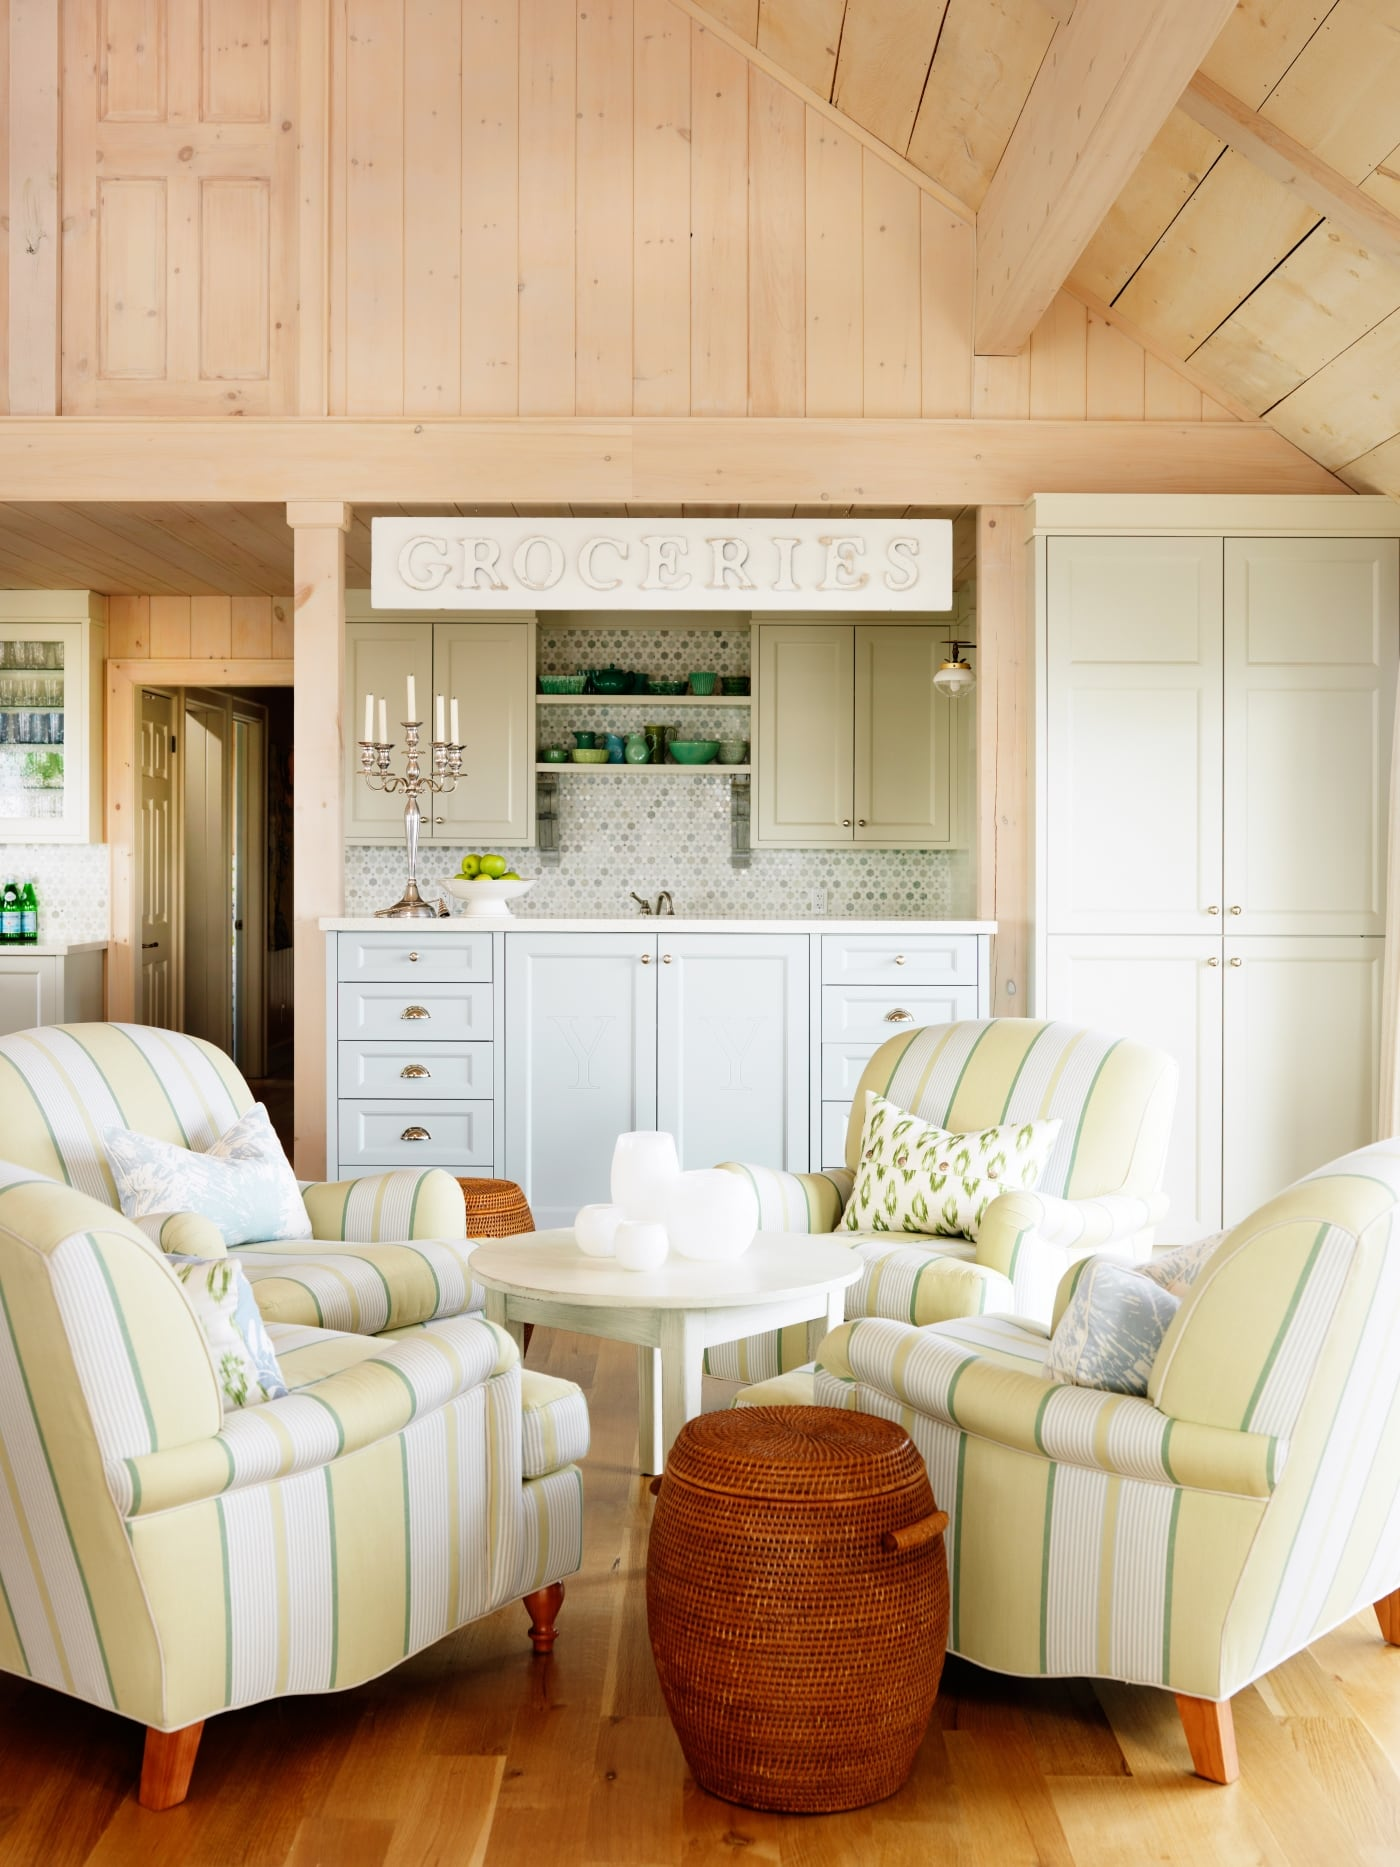 Groceries sign and 4 club chairs conversation area in woodsy cottage #SarahRichardson #cottagestyle